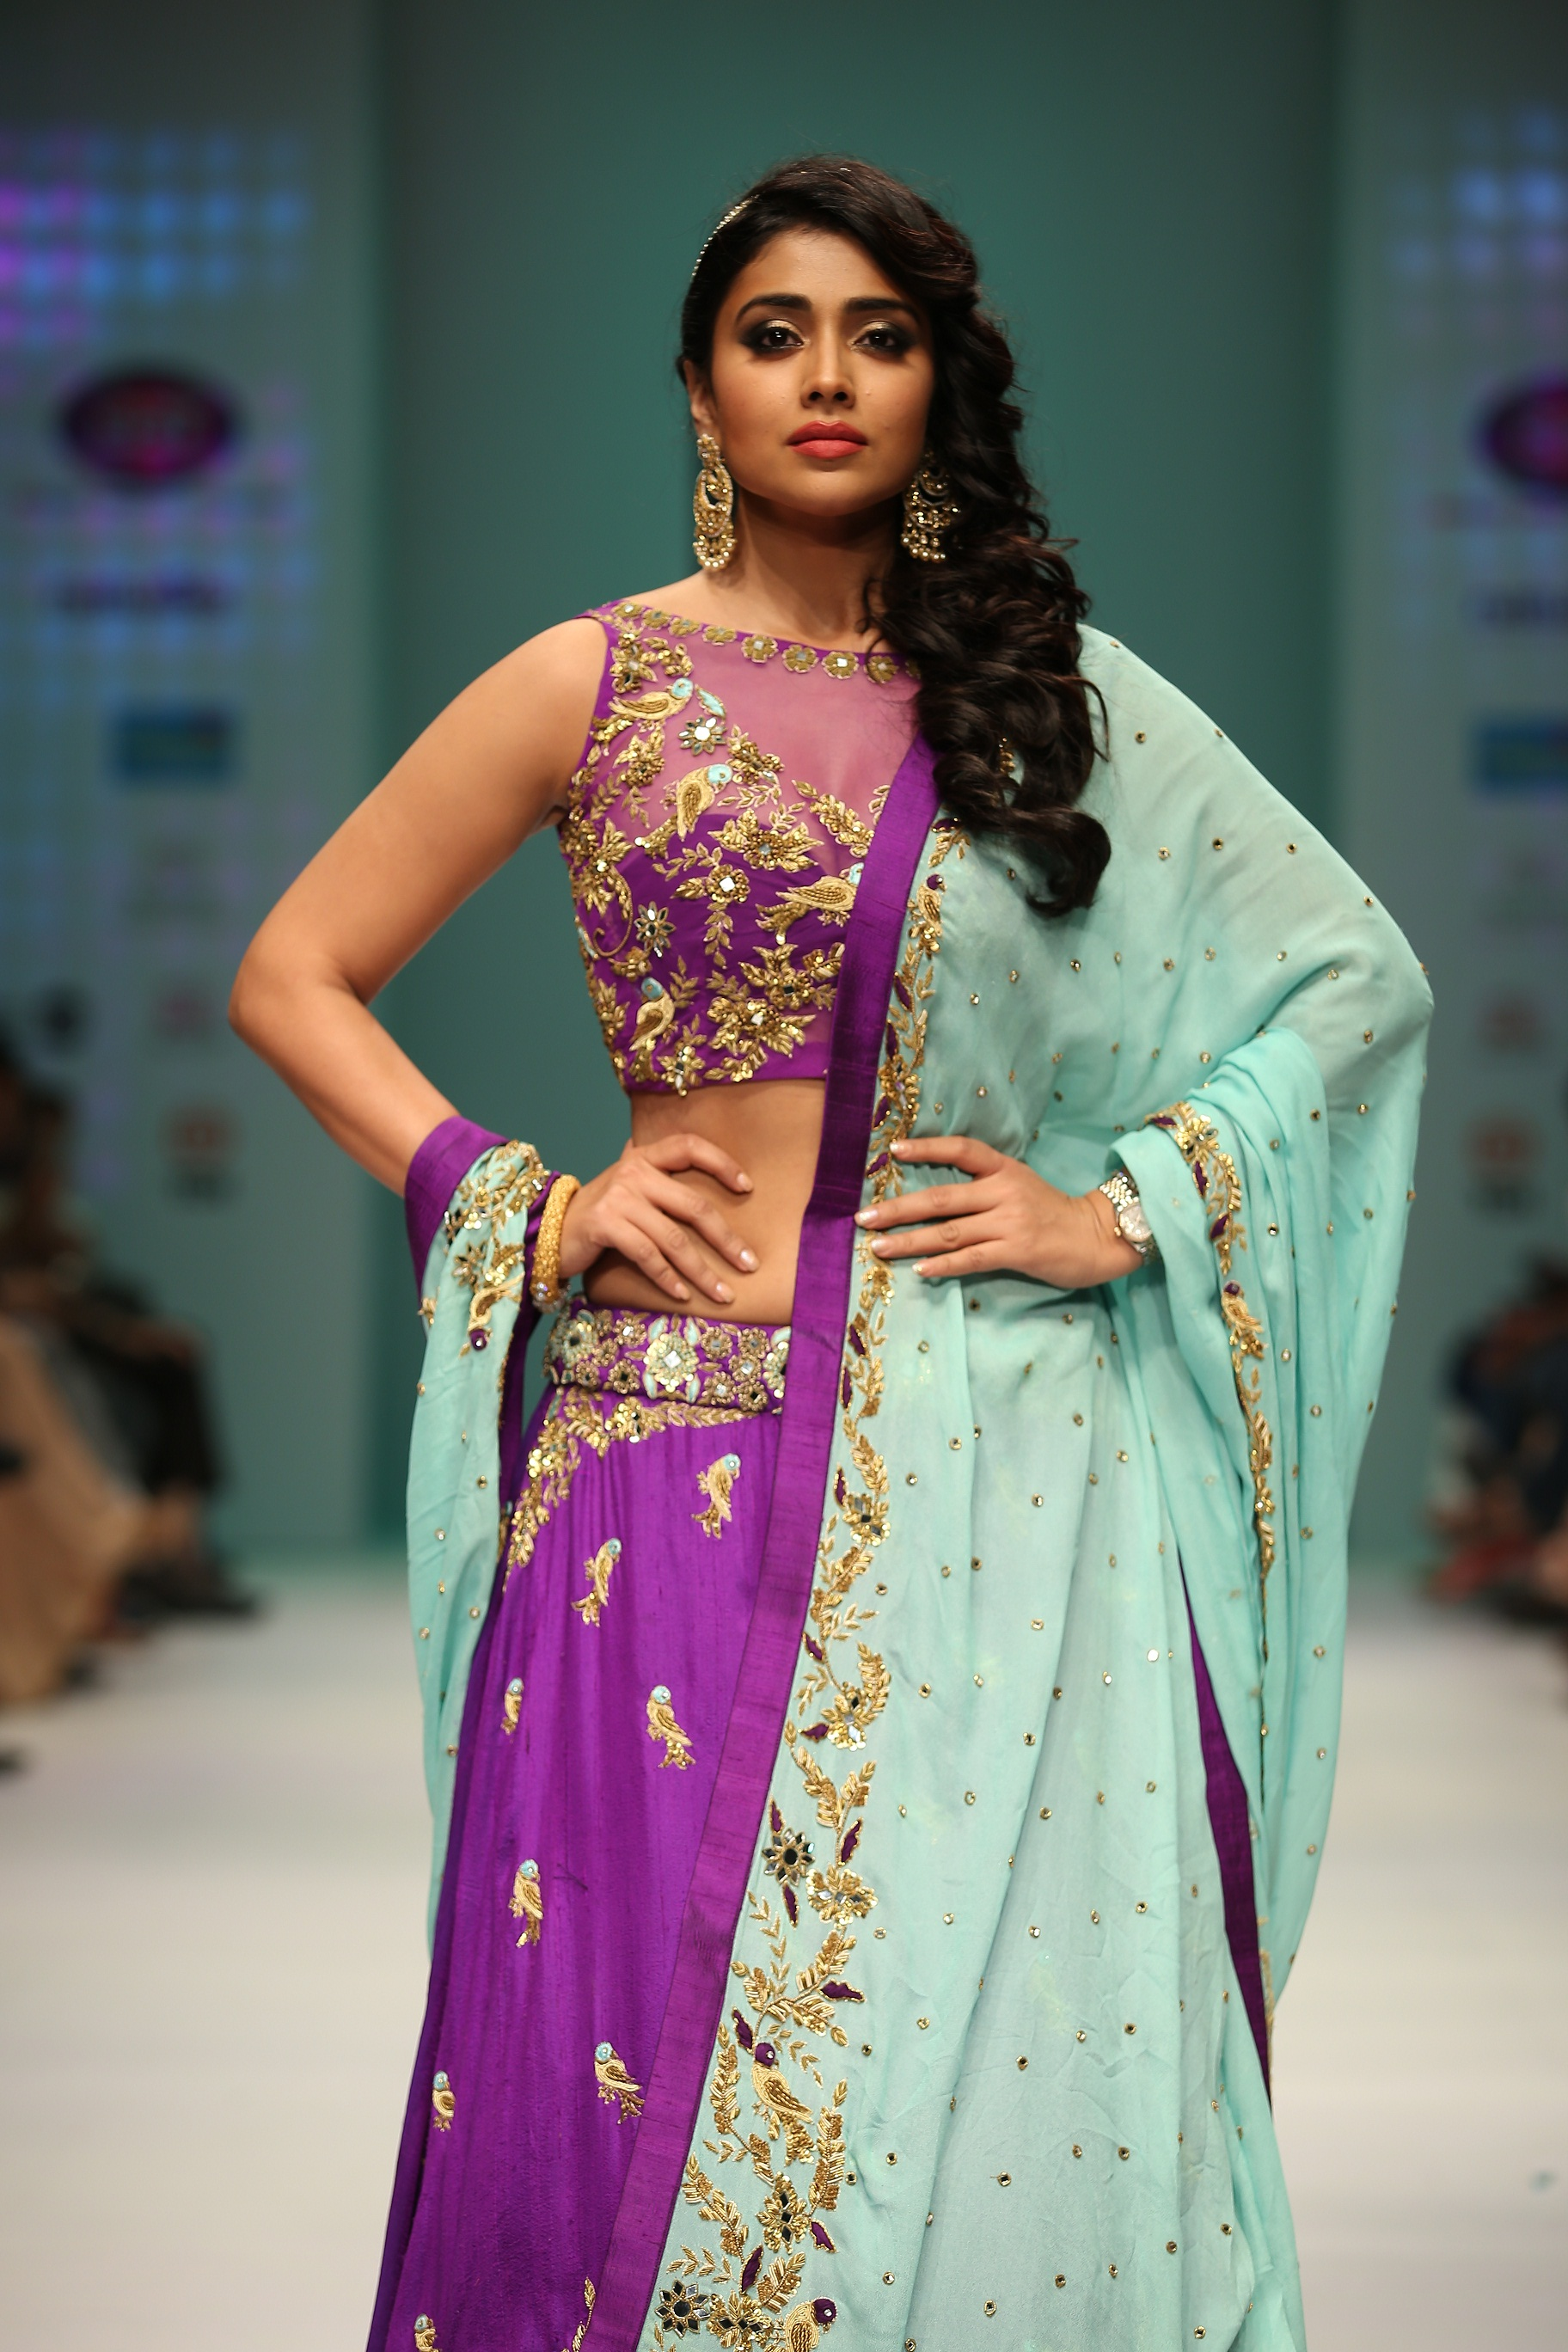 shriya Saran walked the ramp for Designer Architha Narayanam| India Fashion Week| cherryontopblog.com